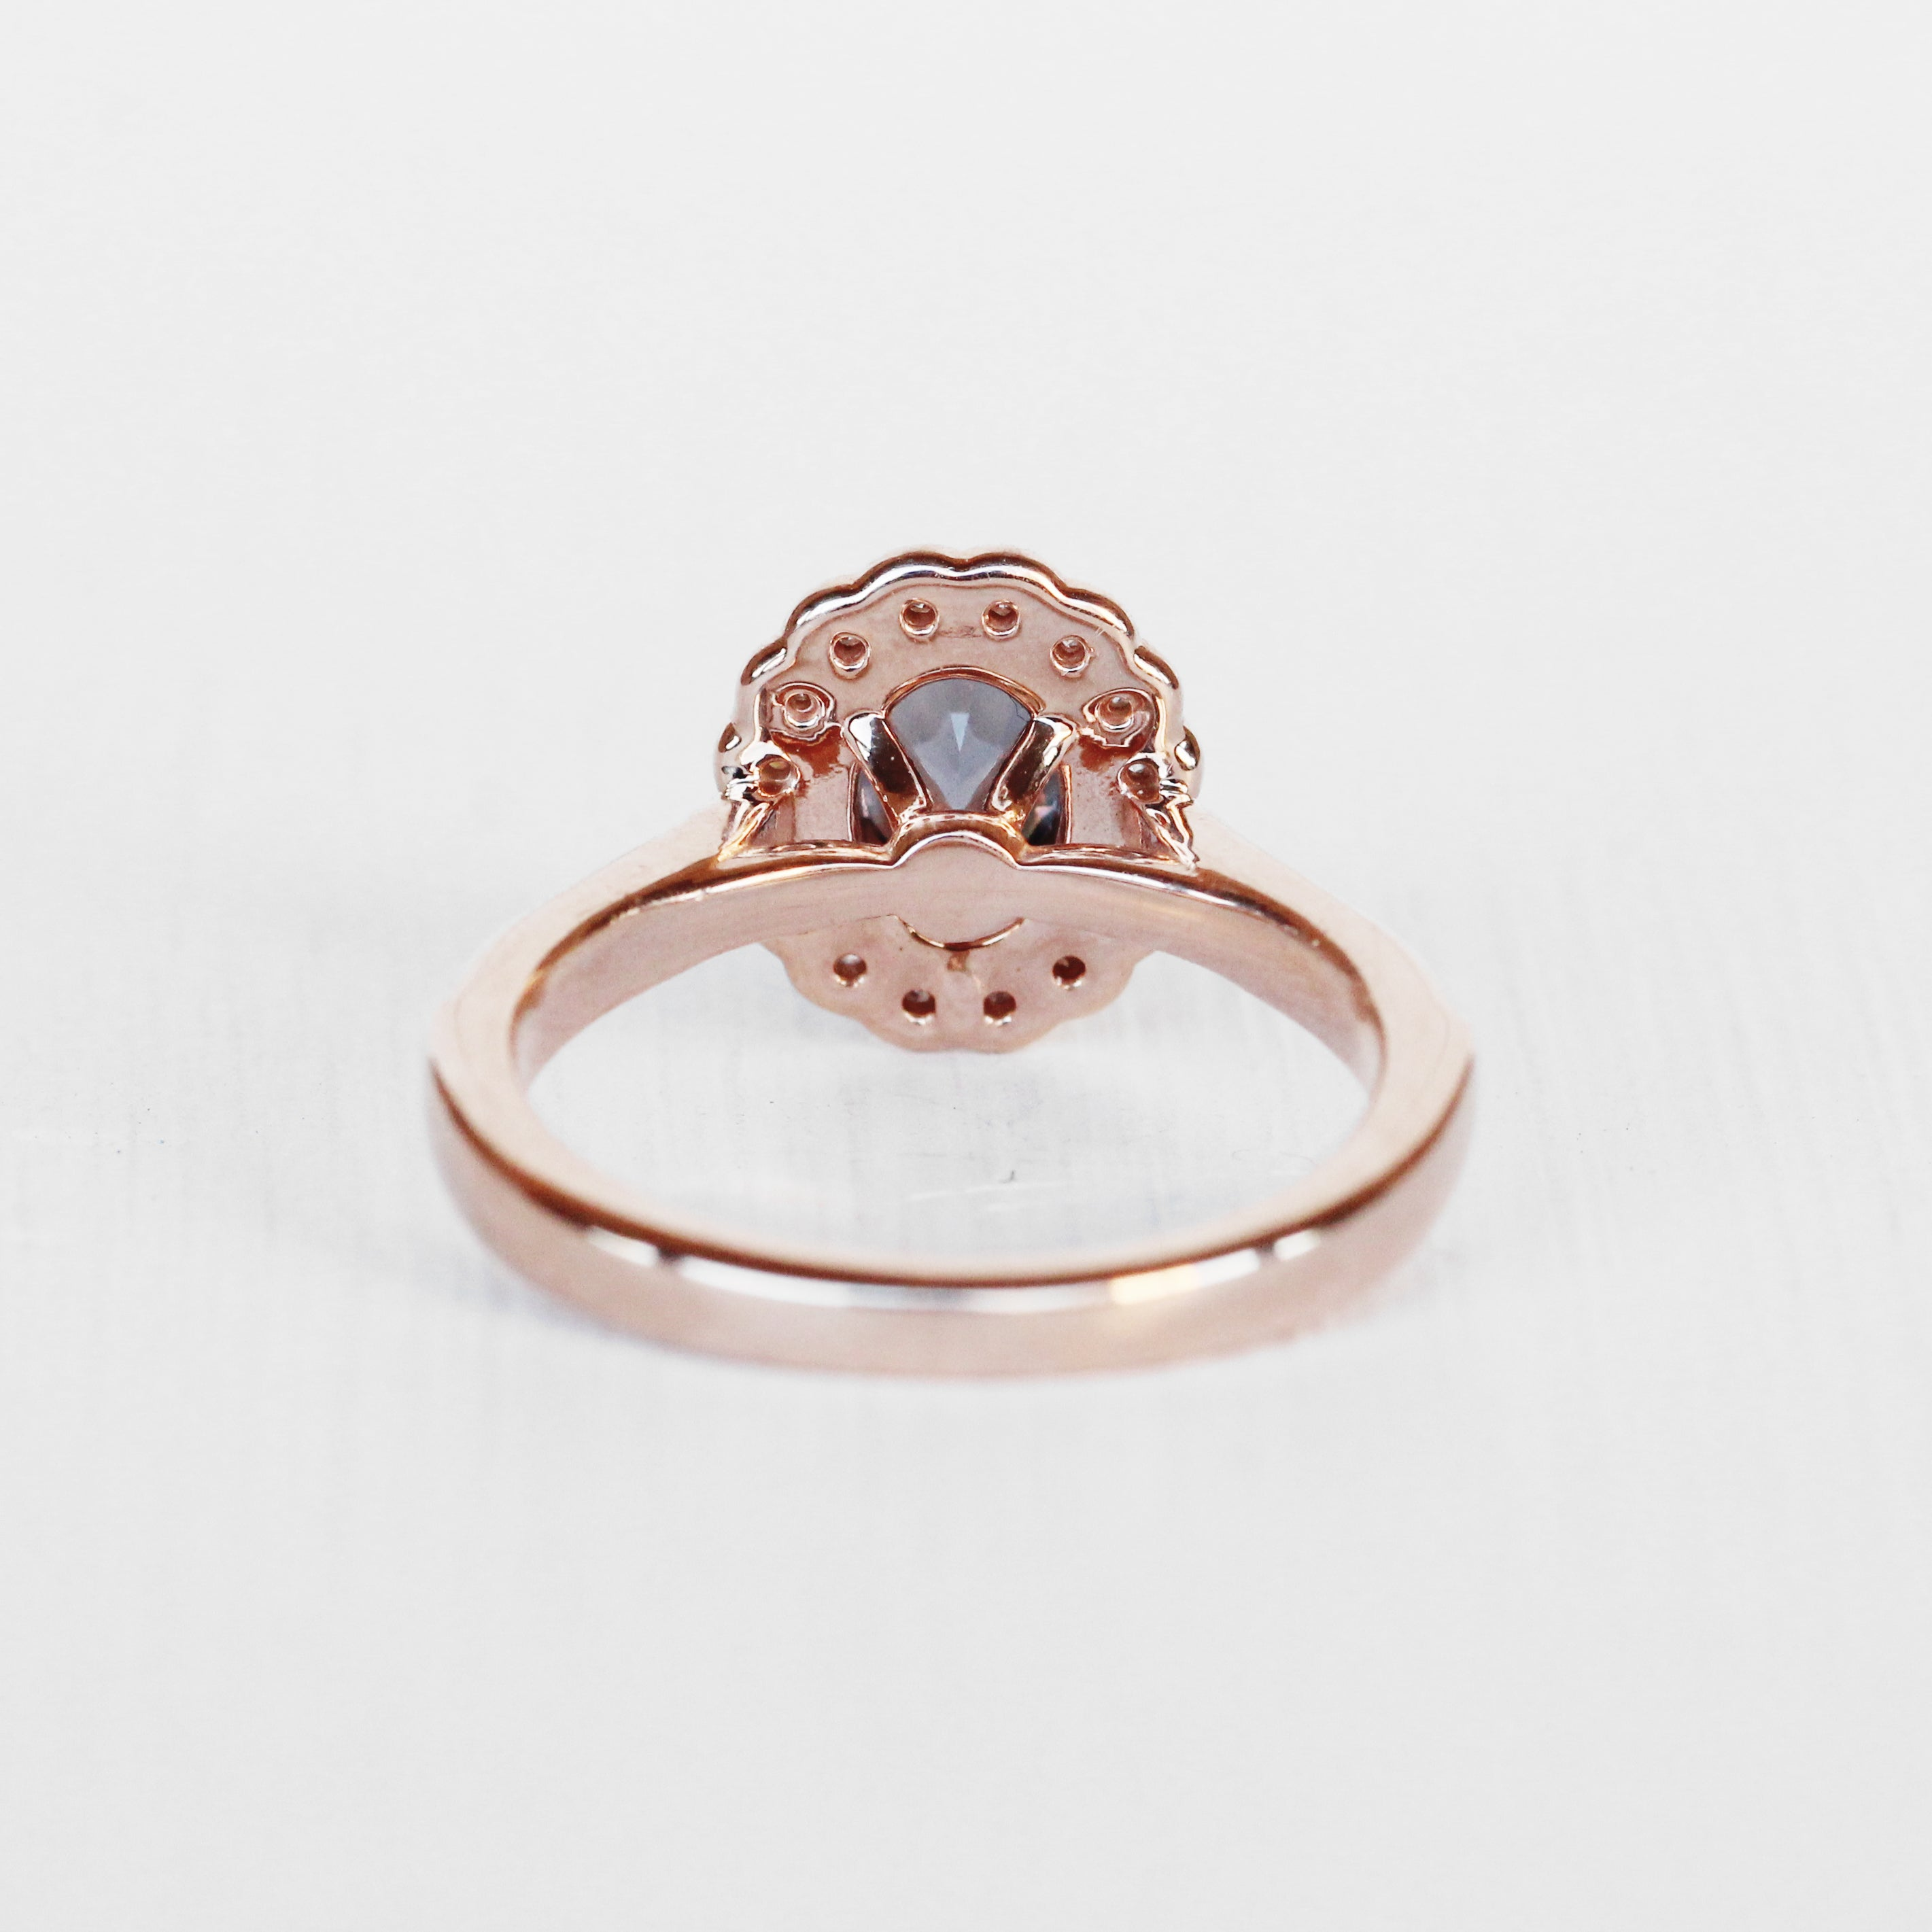 Gloriana Ring with a Spinel in 10k Rose Gold - Ready to Size and Ship